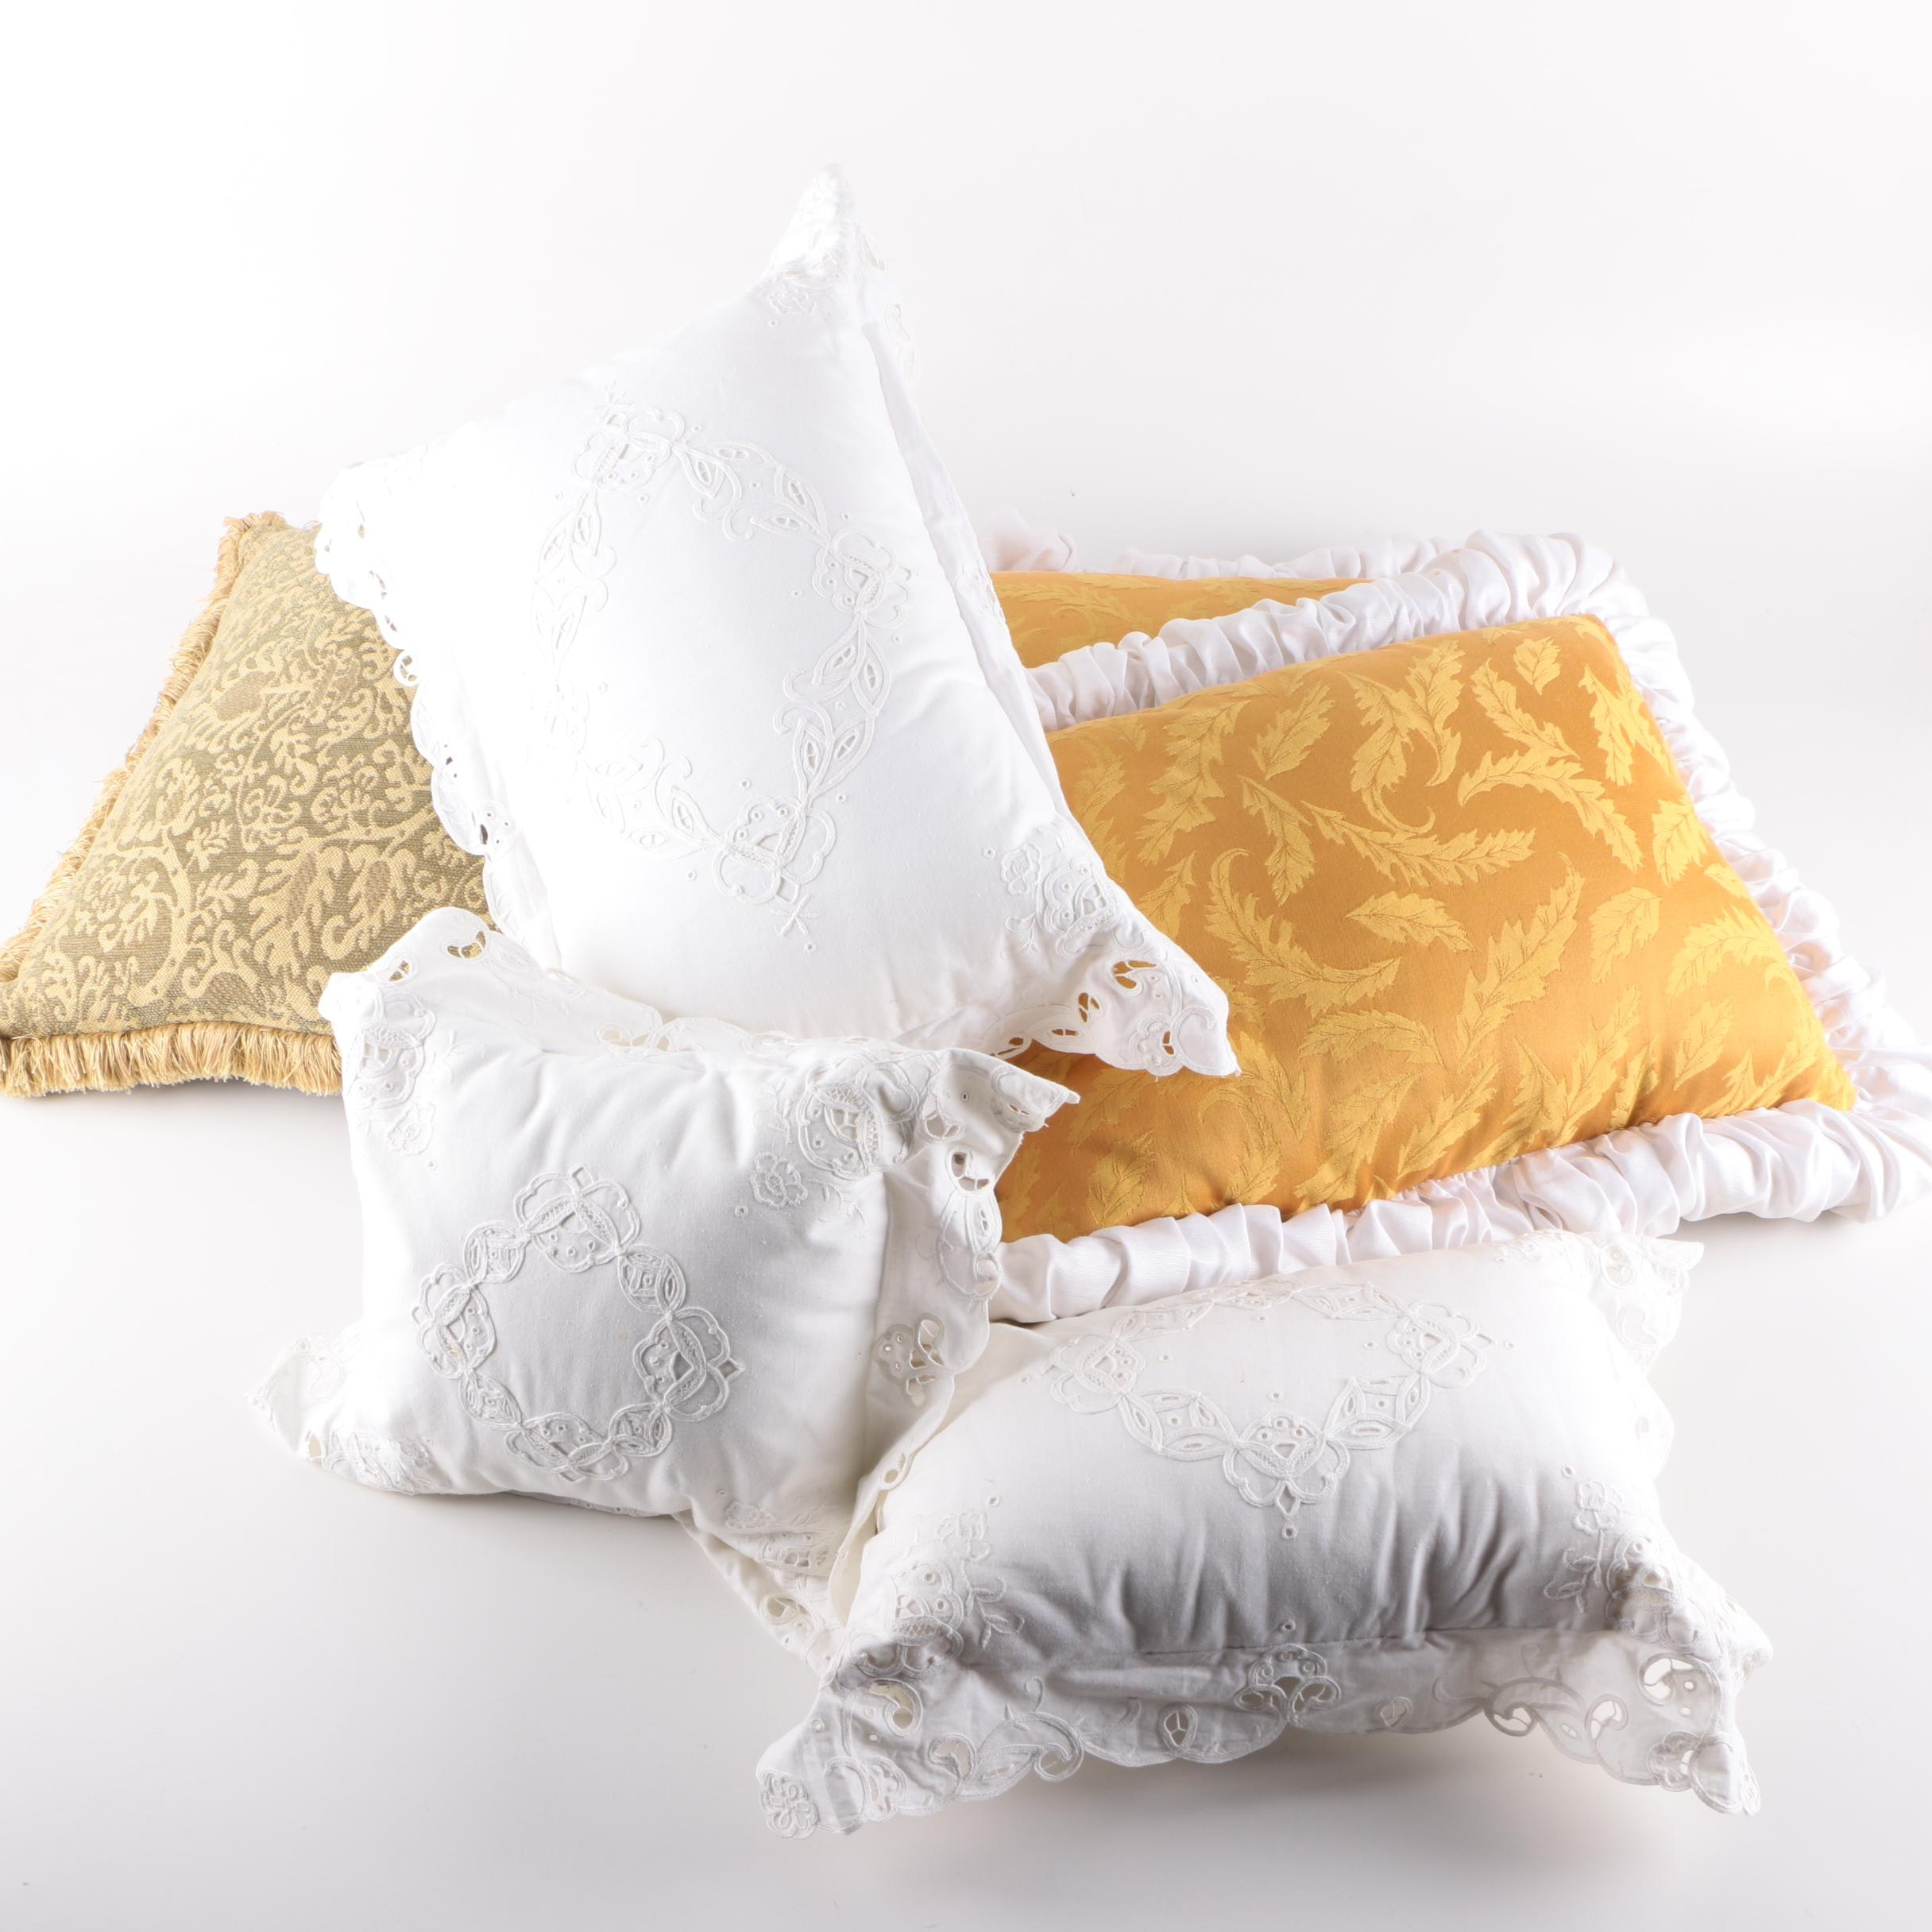 Assorted Cloth Trimmed Throw Pillows